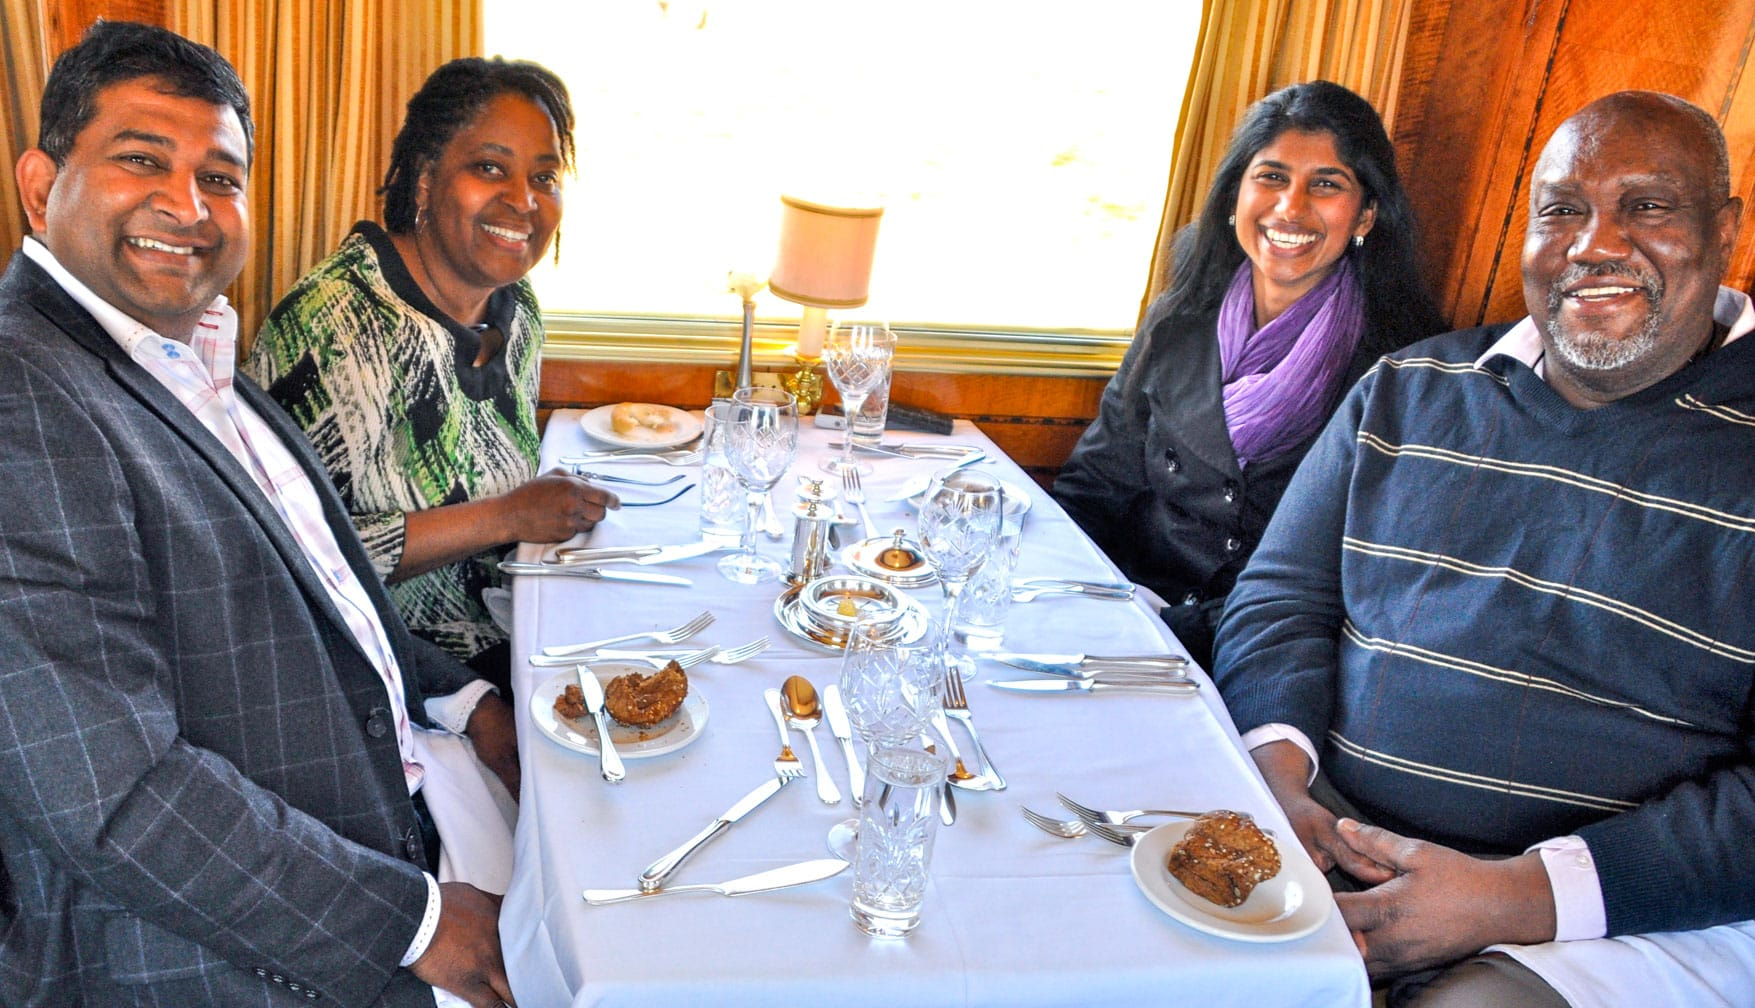 Friend sitting in the dining car of The Blue Train